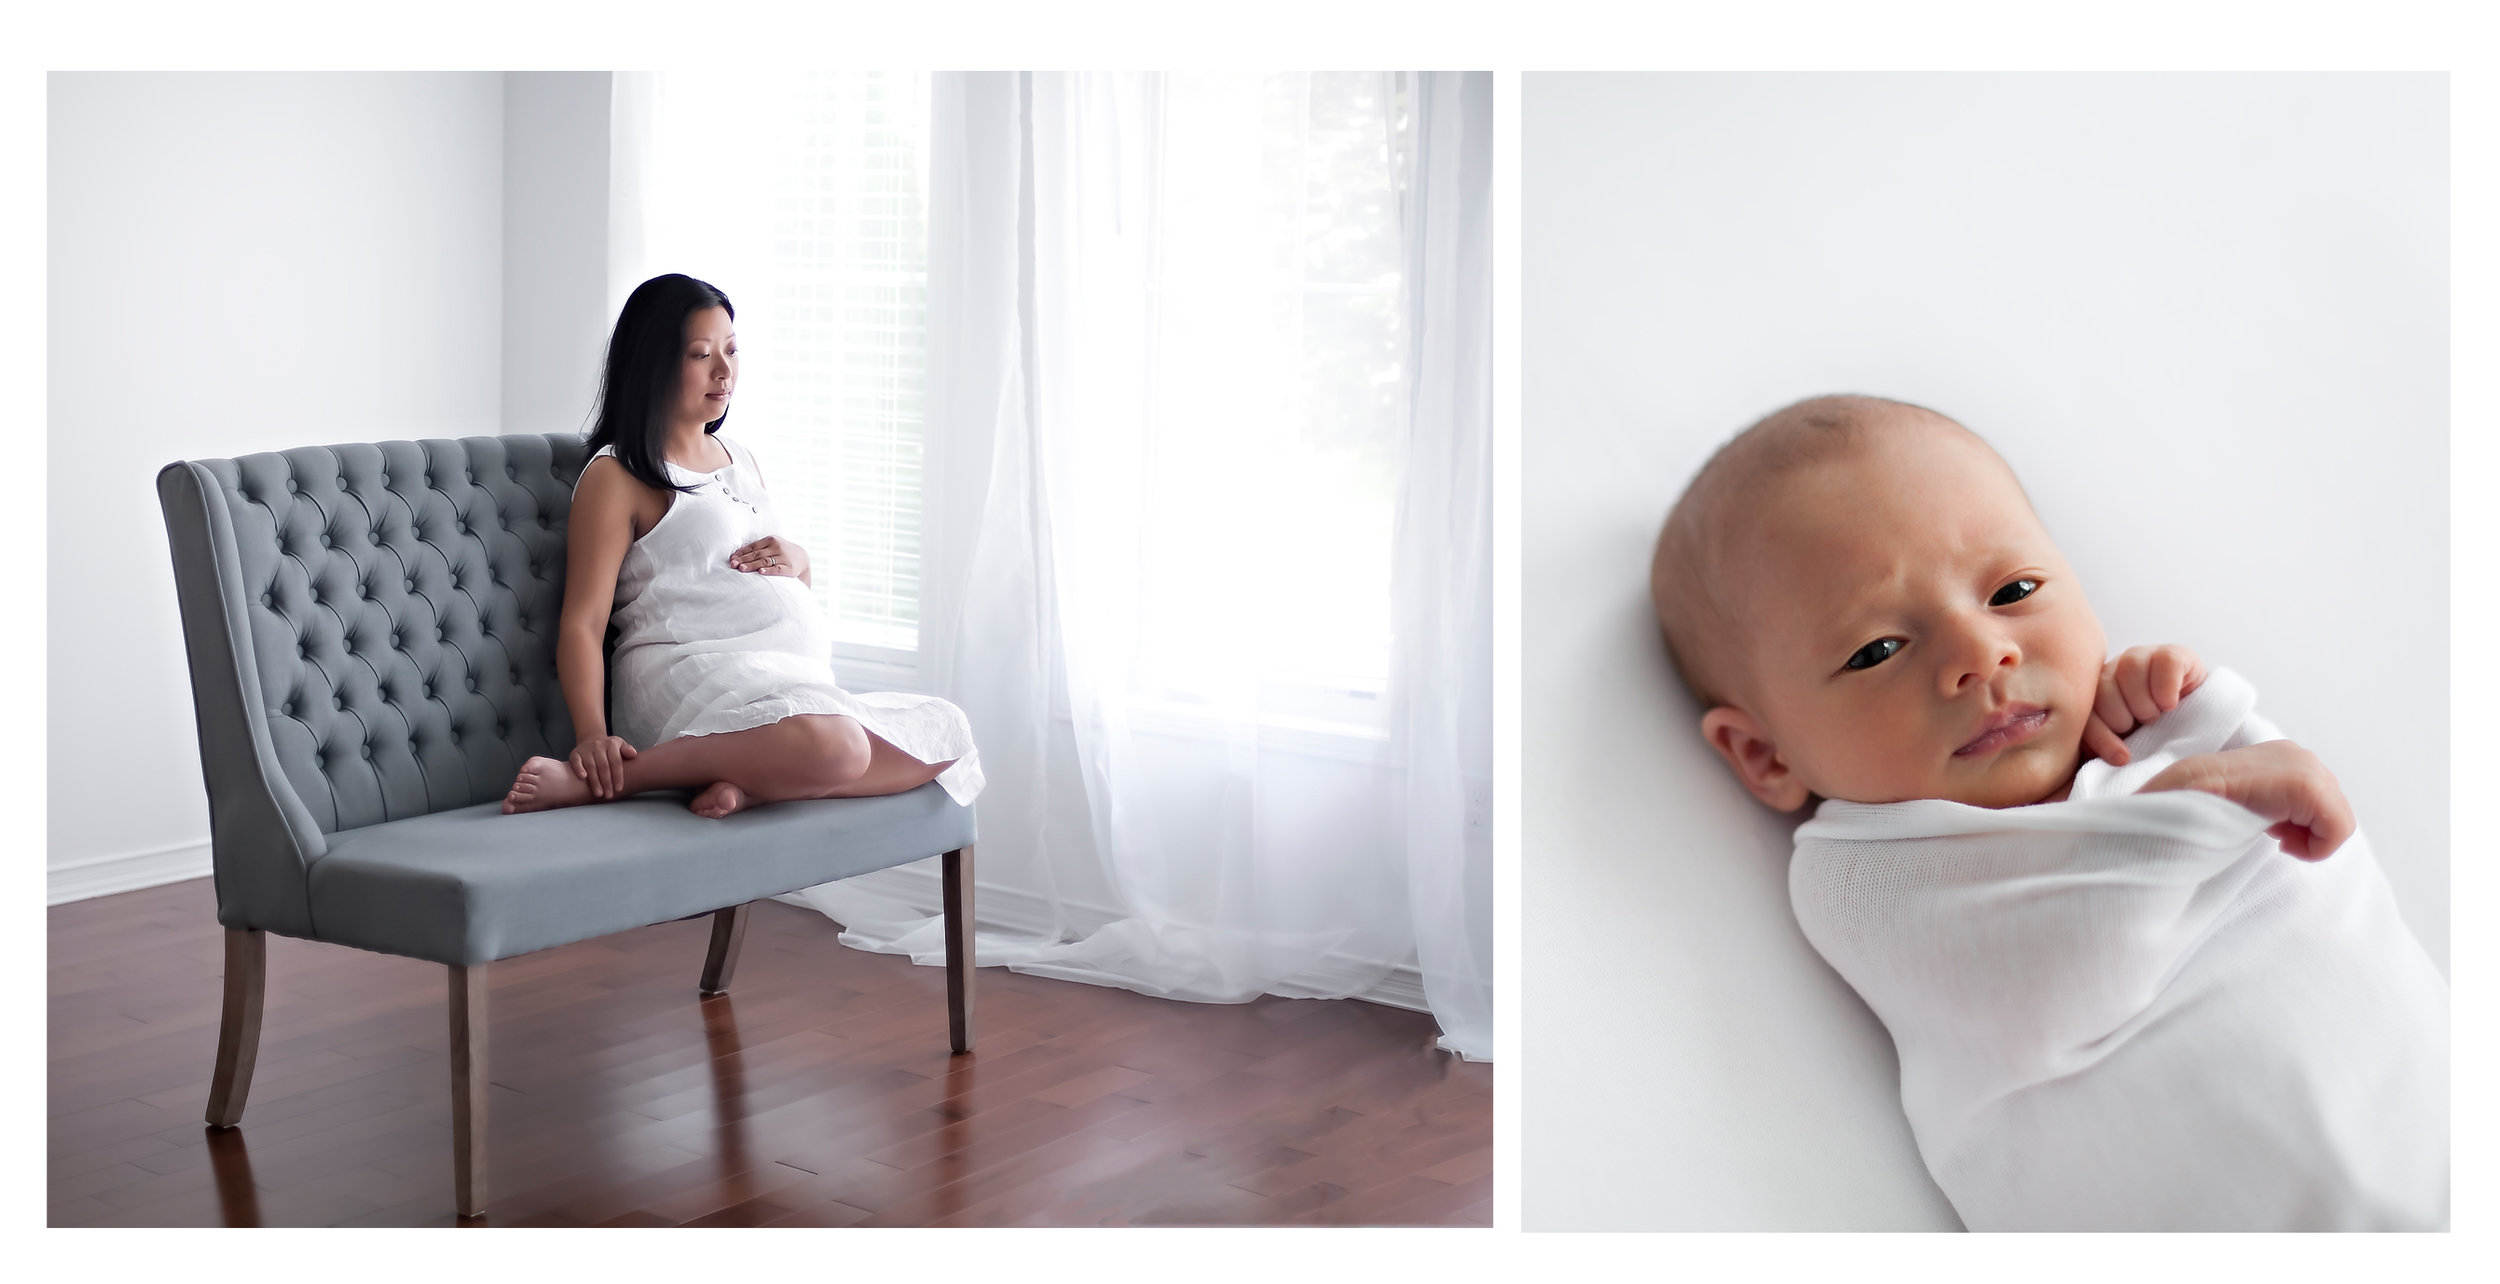 Ajax_Maternity_Newborn_Portrait_Photographer_Petra_King_Photography